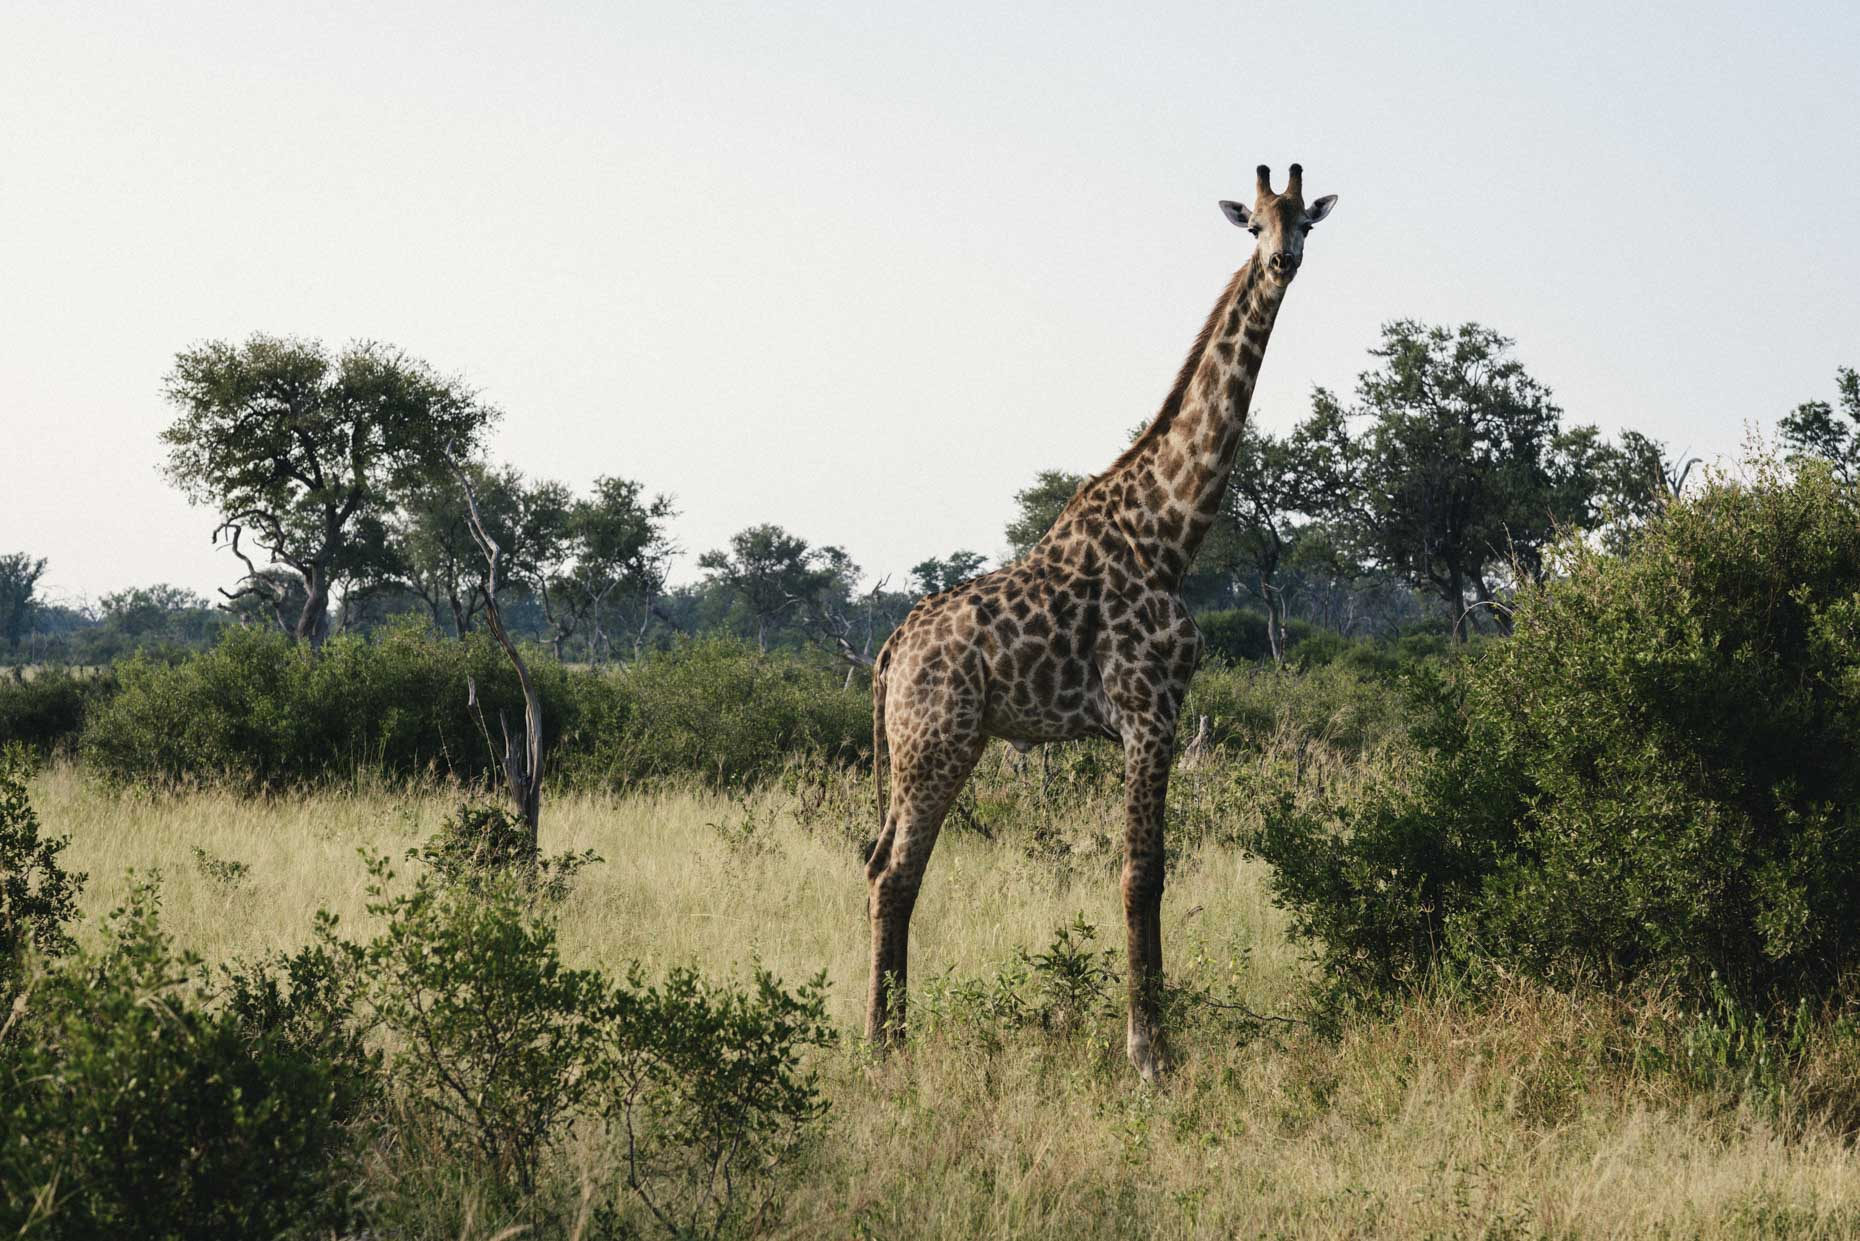 Large spotted giraffe standing tall amongst bushes